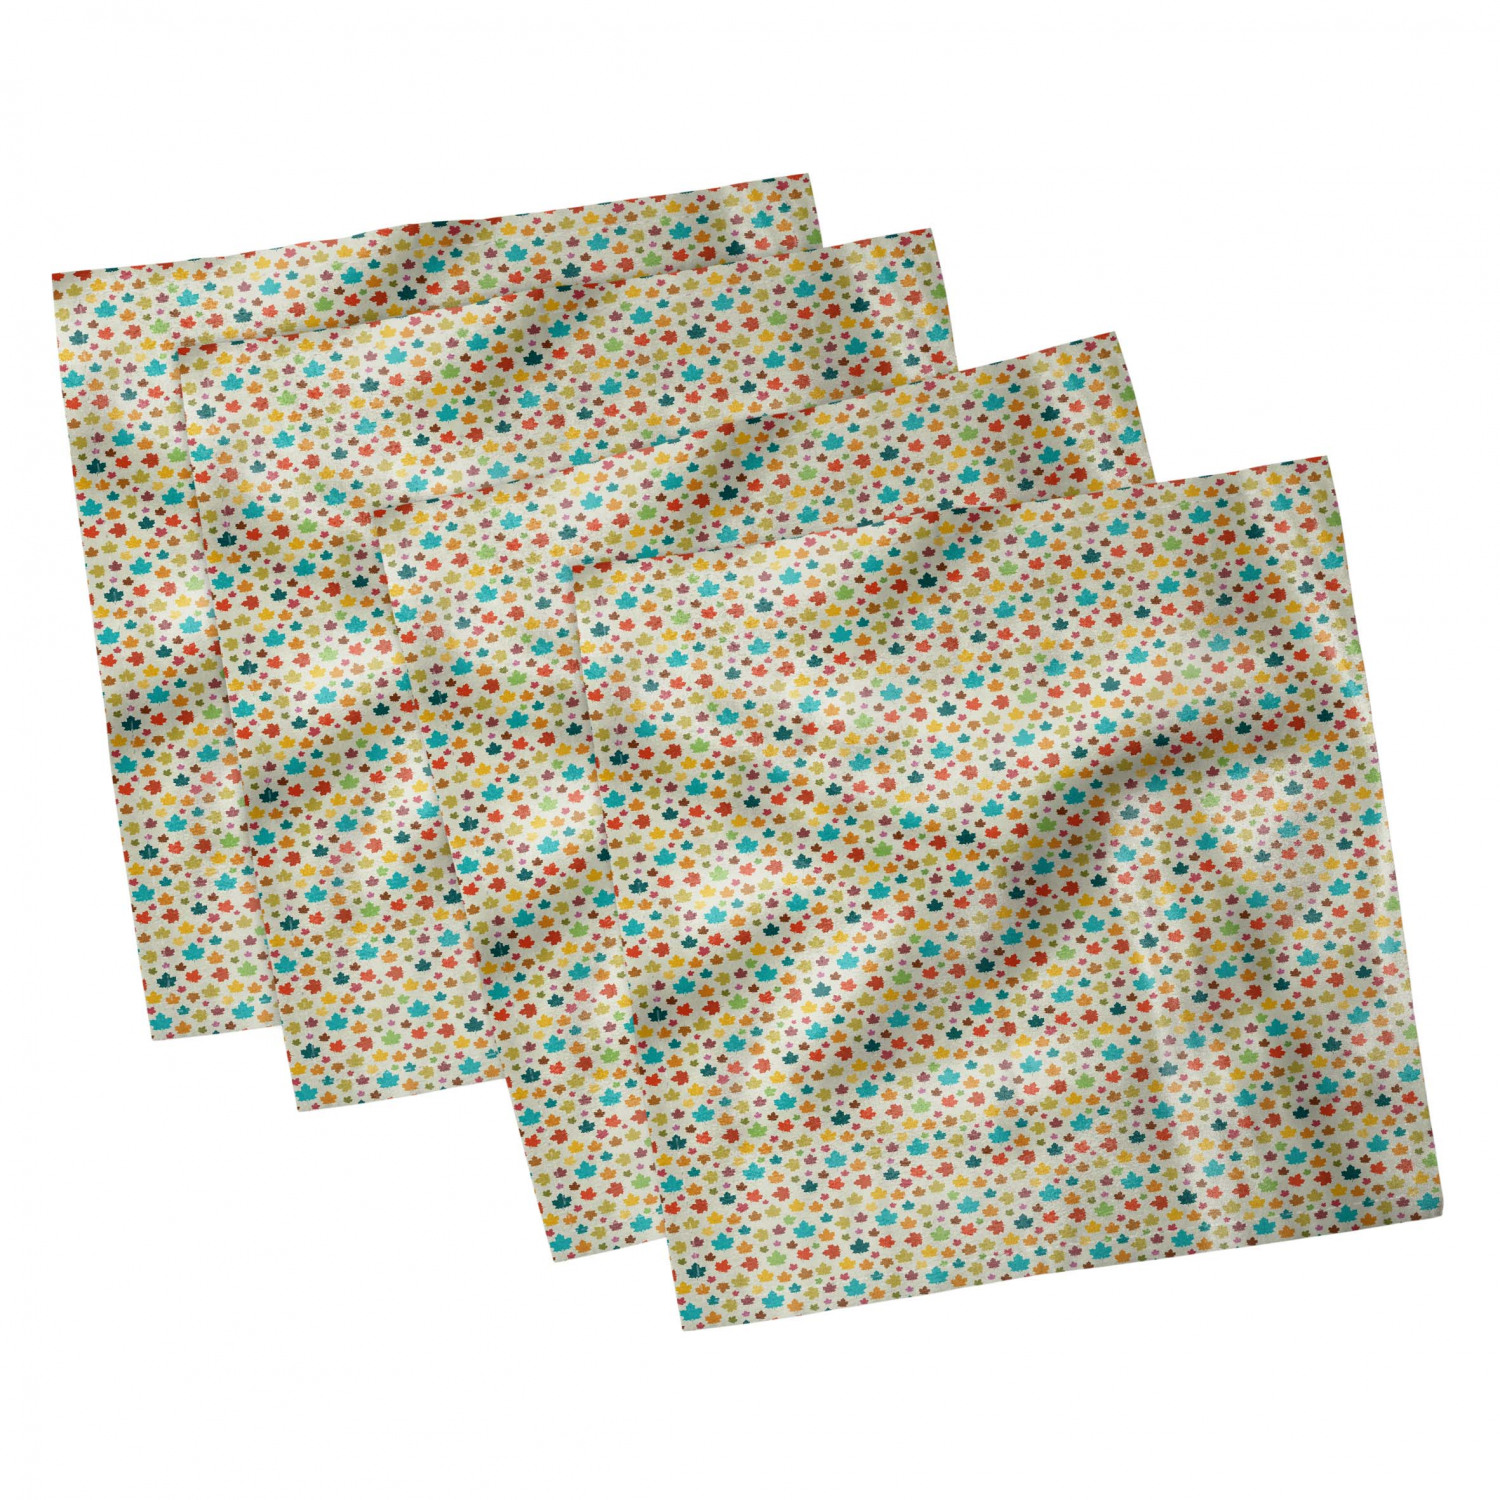 thumbnail 79 - Ambesonne Autumn Fall Decorative Satin Napkins Set of 4 Party Dinner Fabric